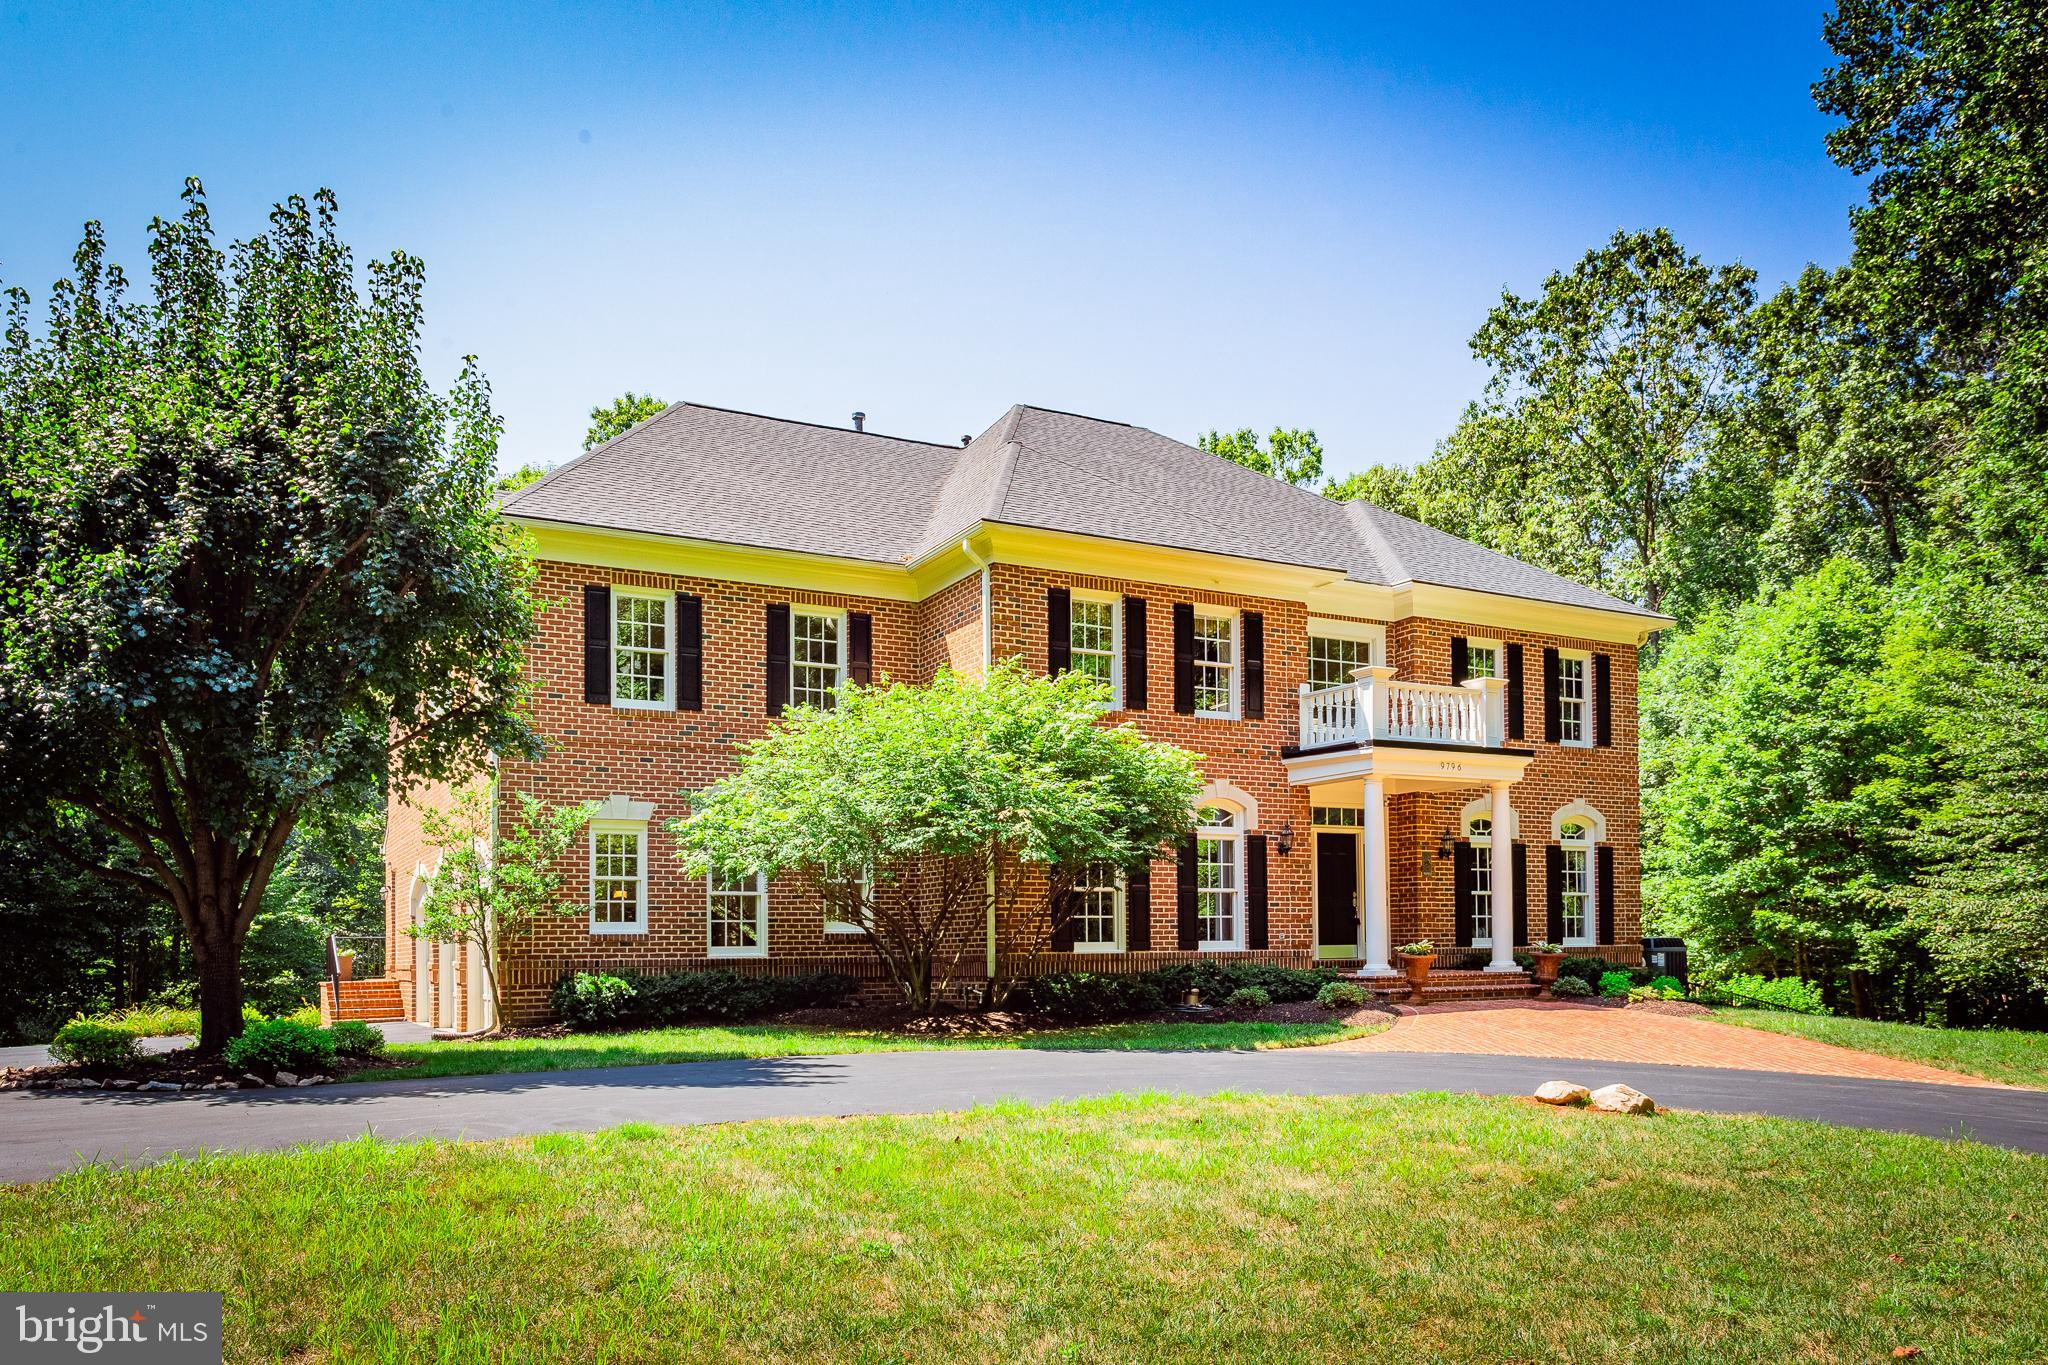 9796 THORN BUSH DRIVE, FAIRFAX STATION, VA 22039